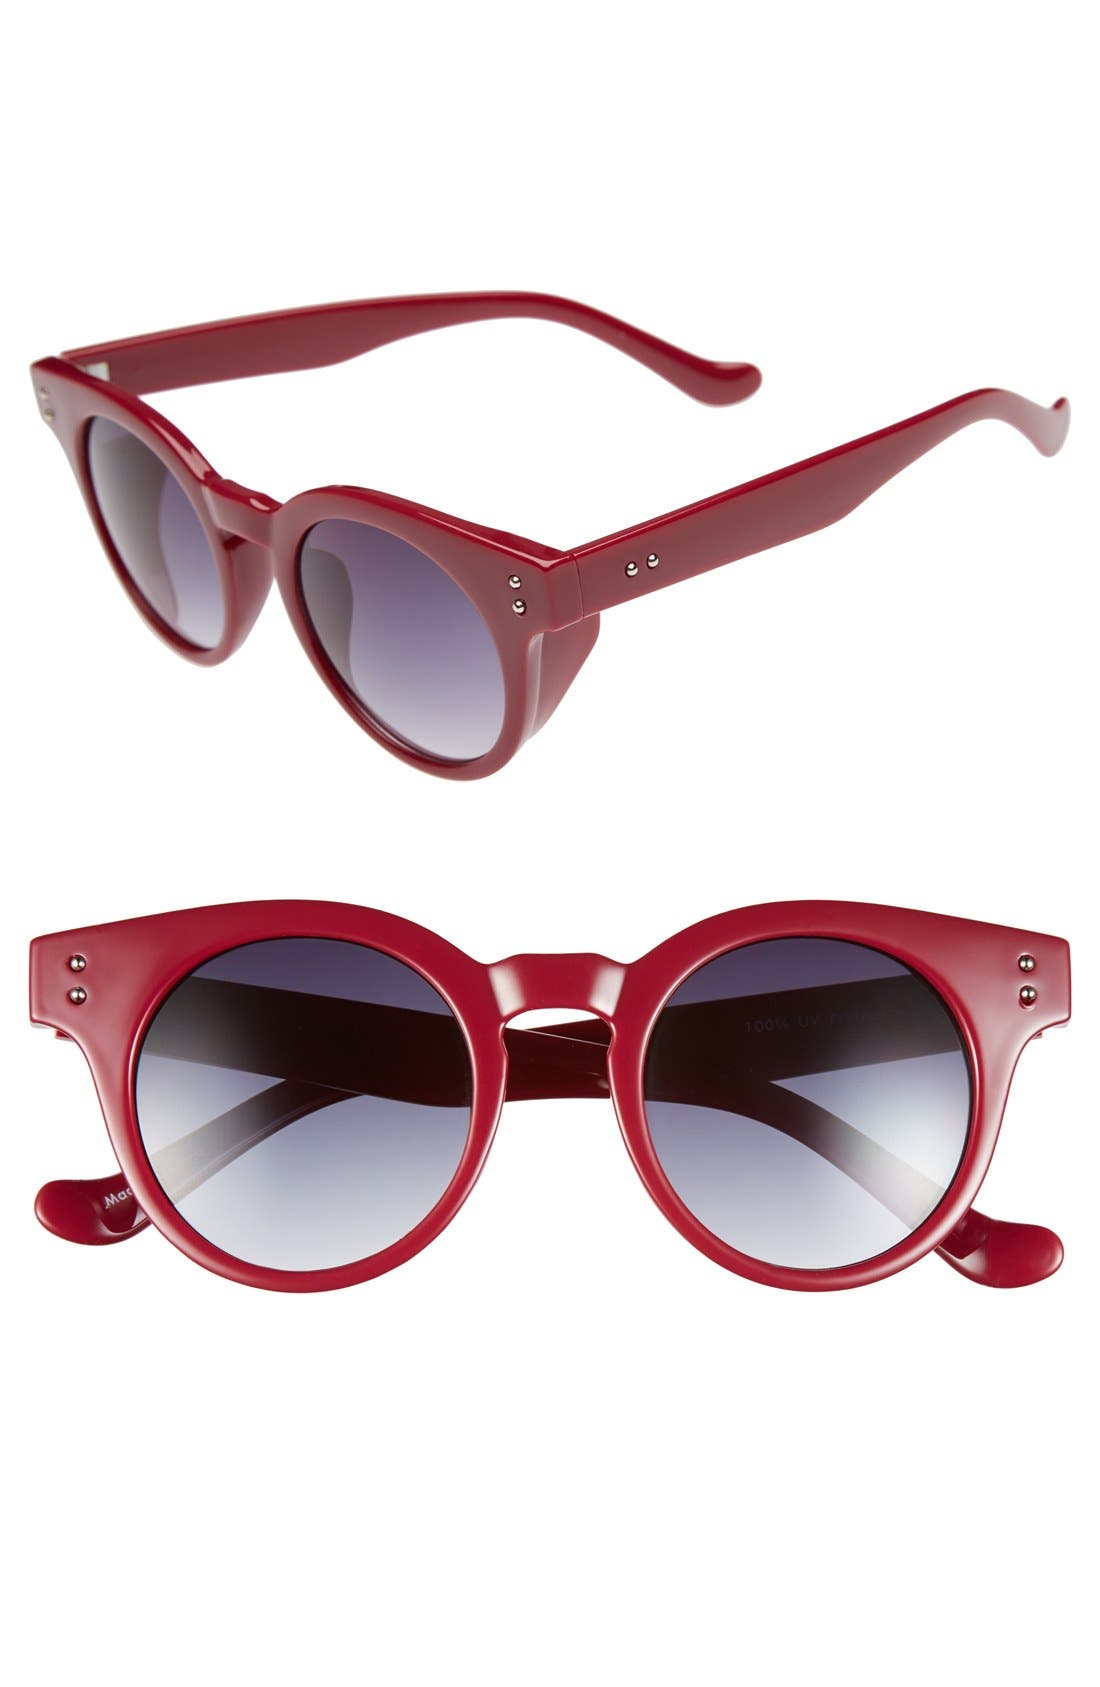 Alternate Image 1 Selected - FE NY 45mm Round Retro Sunglasses